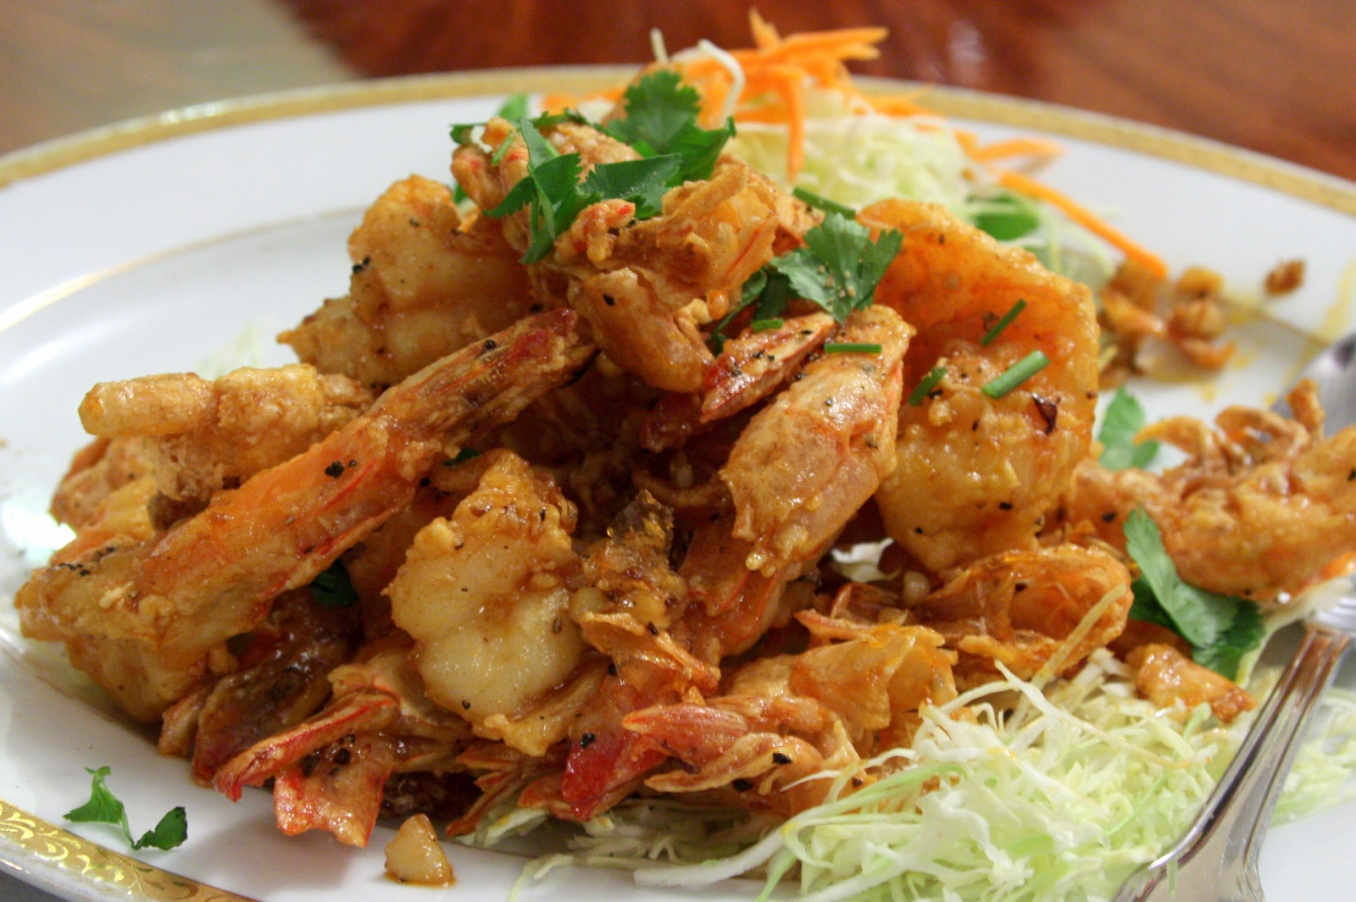 Garlic Prawns at Lotus of Siam